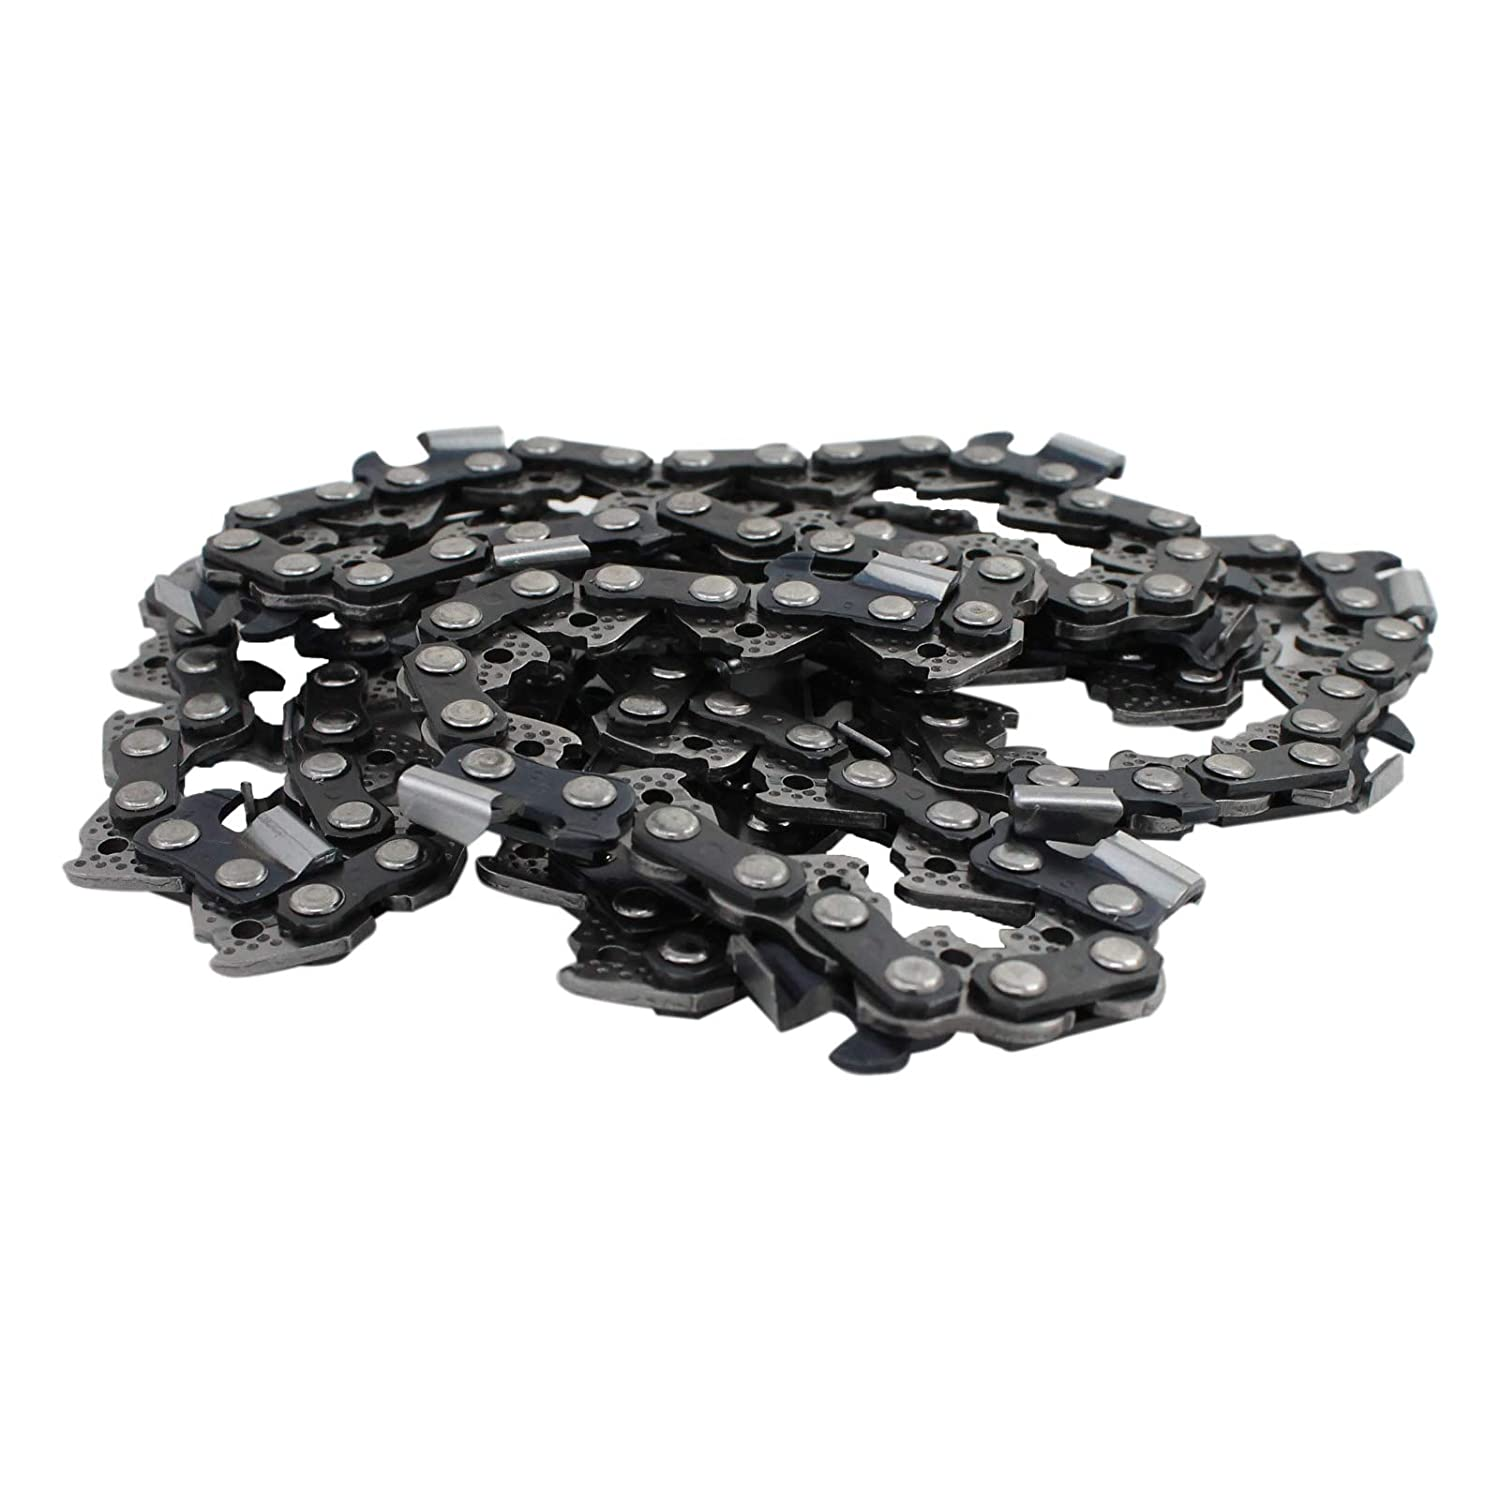 UpStart Components 4 Pack Replacement 20-Inch H78 20BPX Chainsaw Chain for Remington RM4620 Chainsaw 20 Length.325 Pitch, 0.050 Gauge, 78 Drive Links